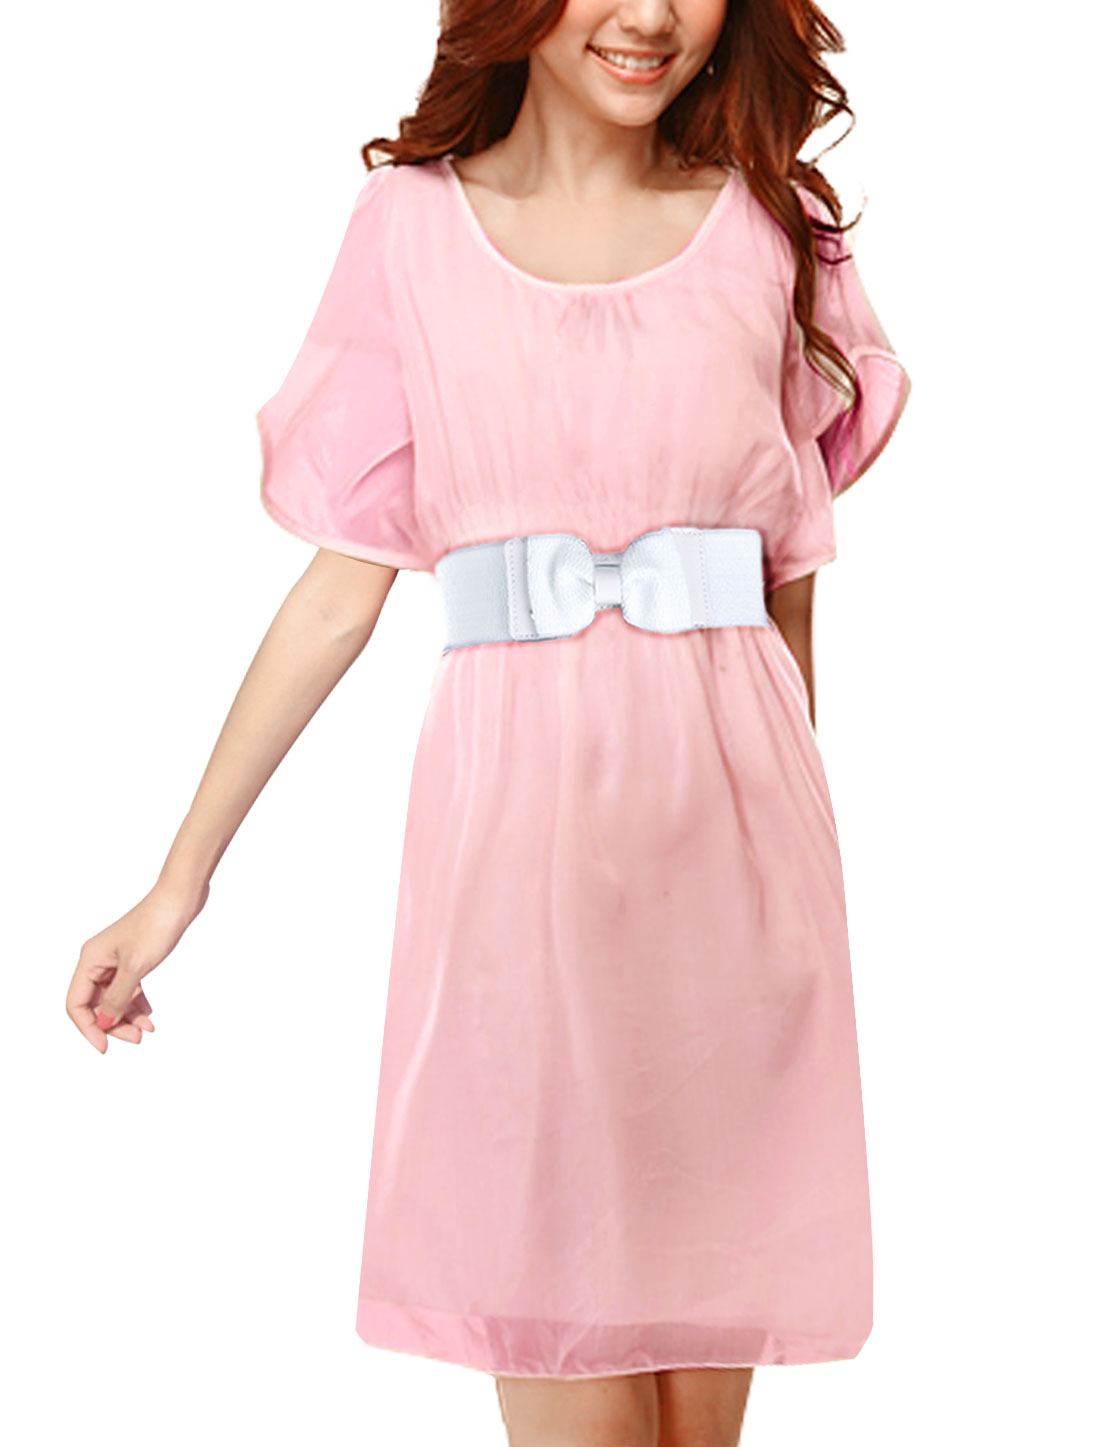 Woman Chic Scoop Neck Short Ruffled Sleeve Pink Belted Above Knee Dress M